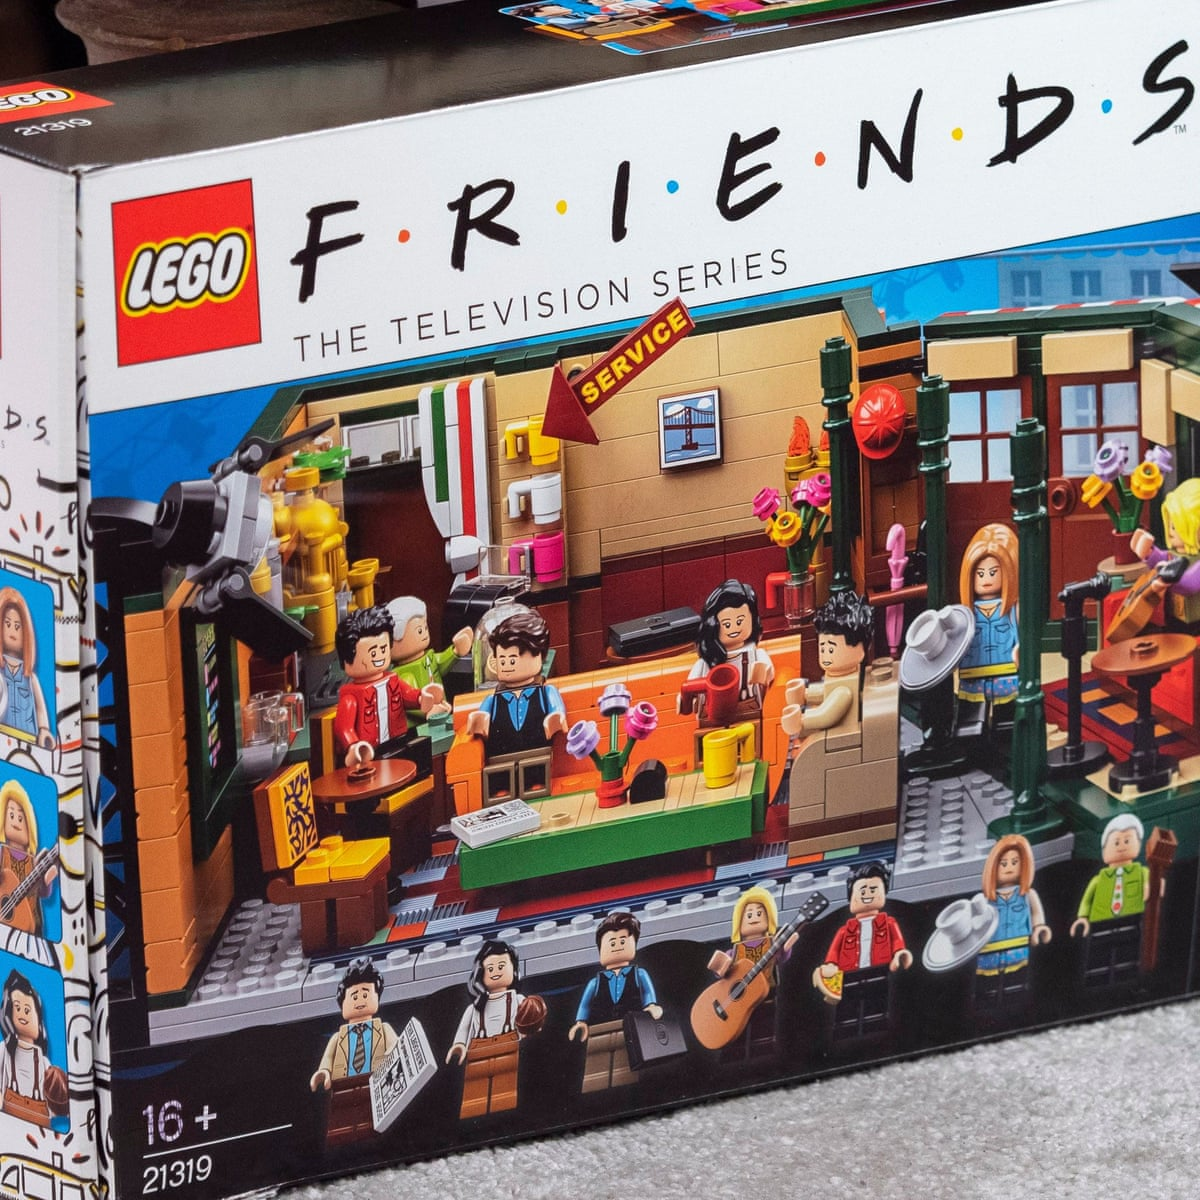 Lego Accused Of Muscling In On Fans After Bricklink Takeover Life And Style The Guardian